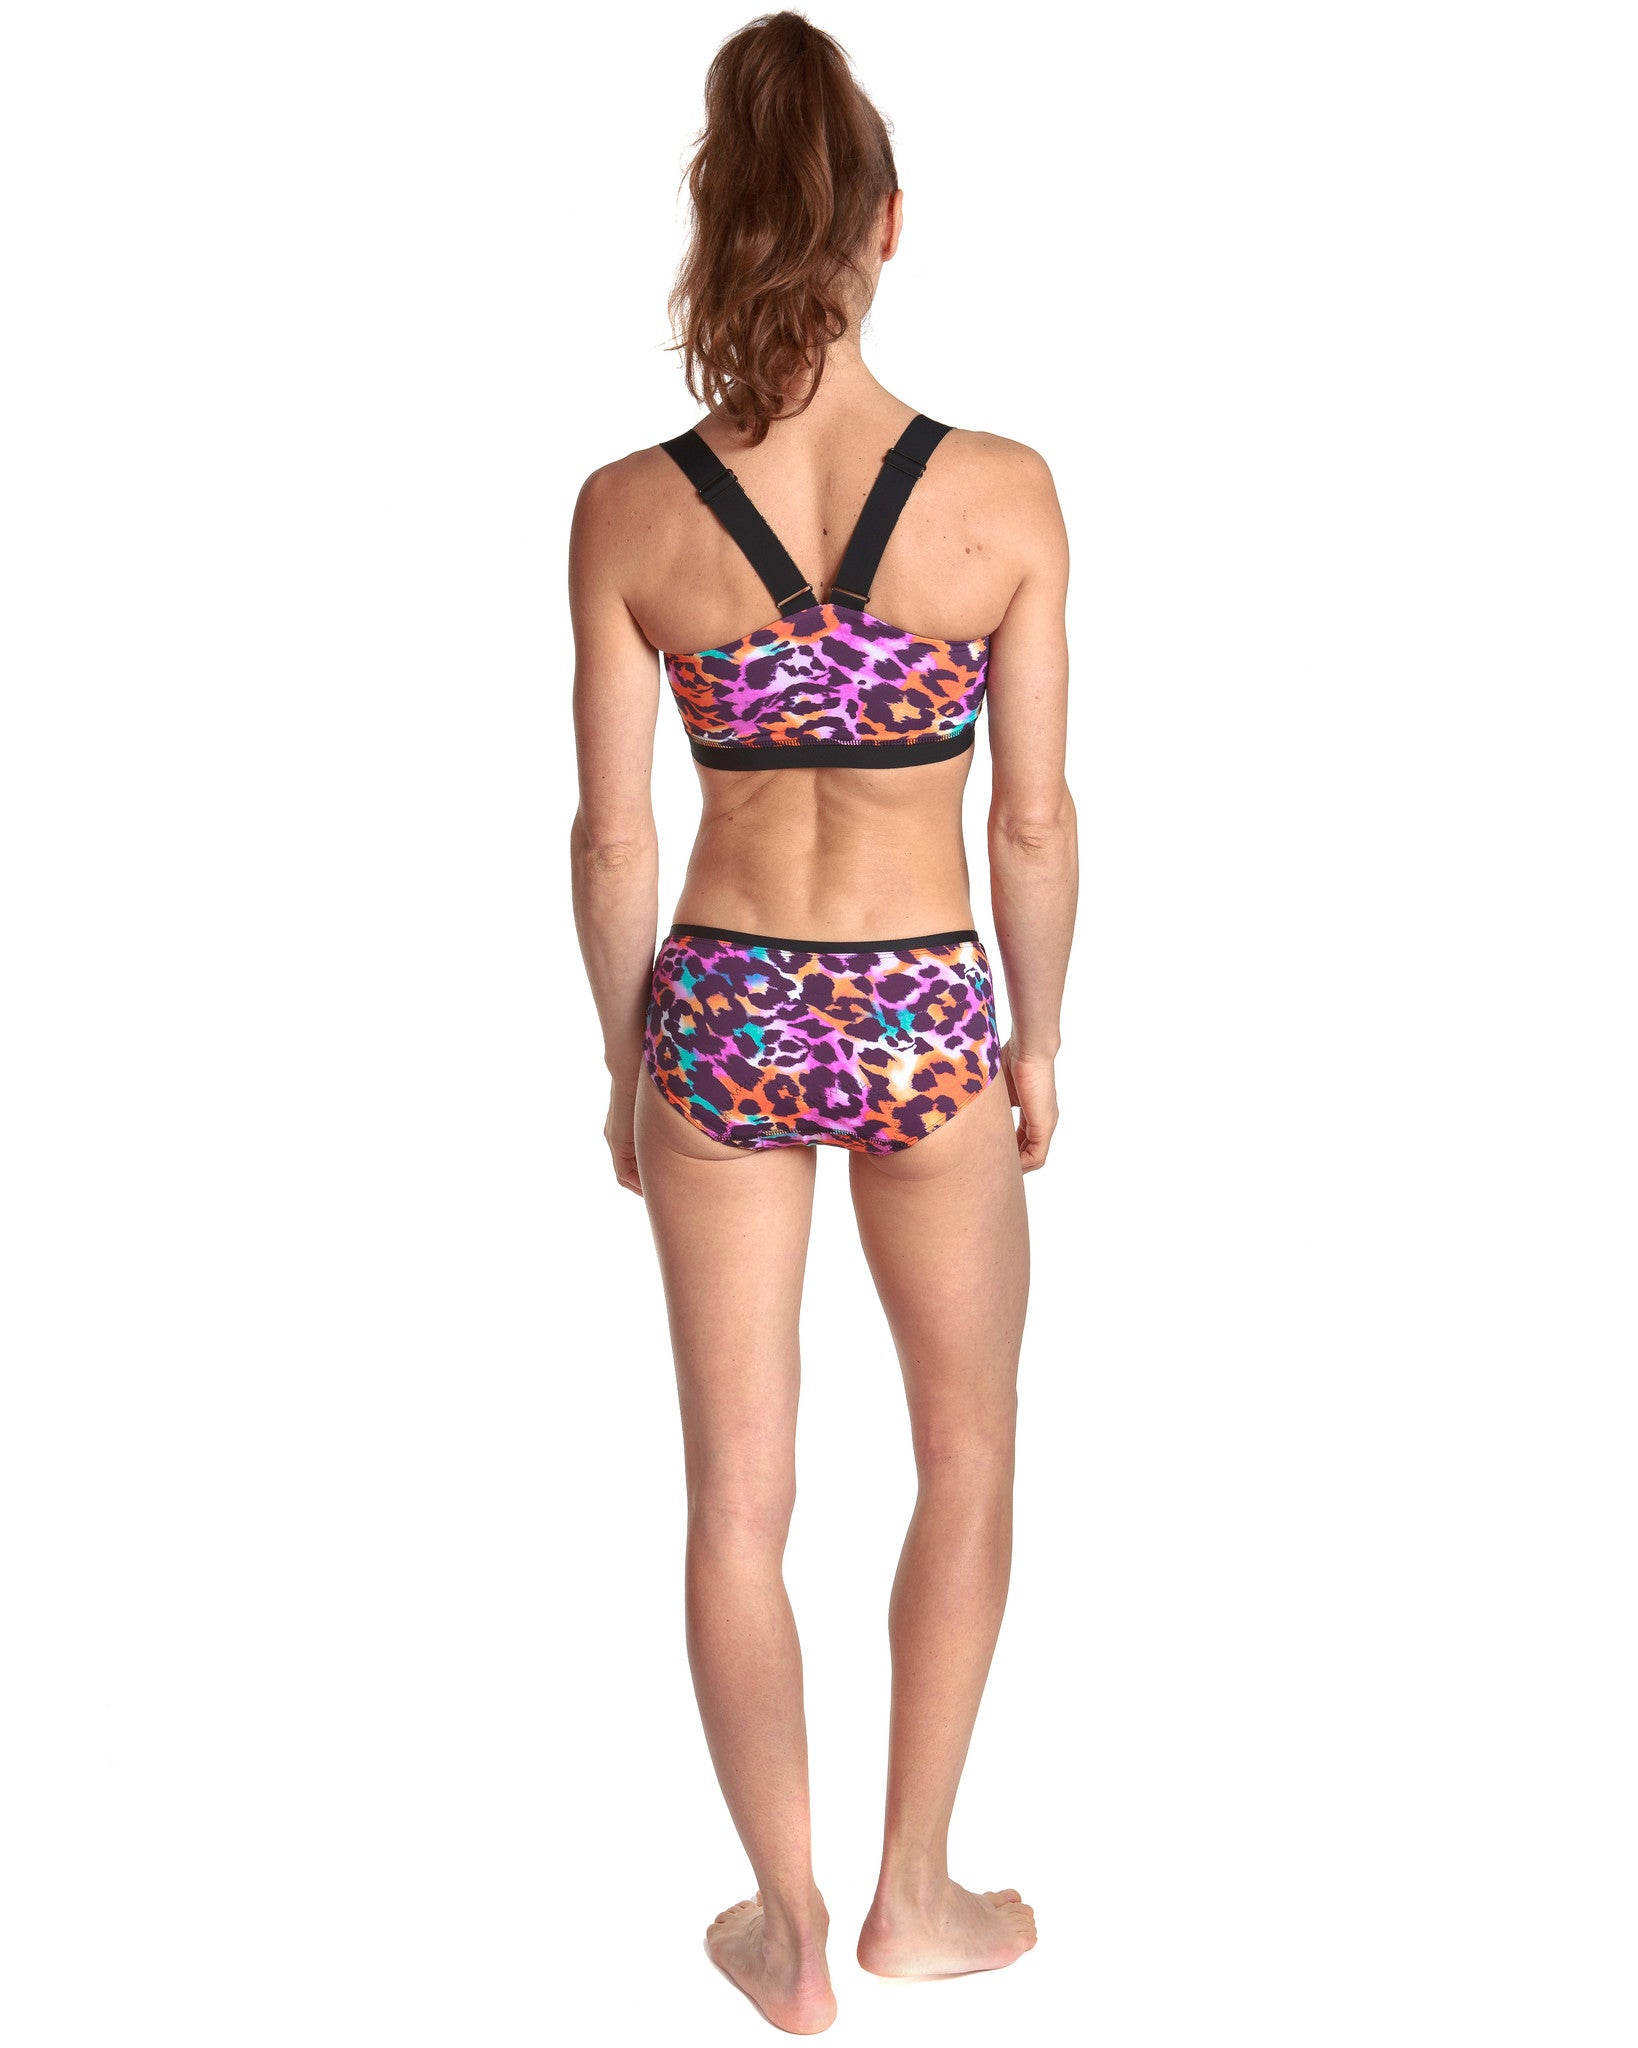 LPRD Pink Cycling Hipster Undies | Back View